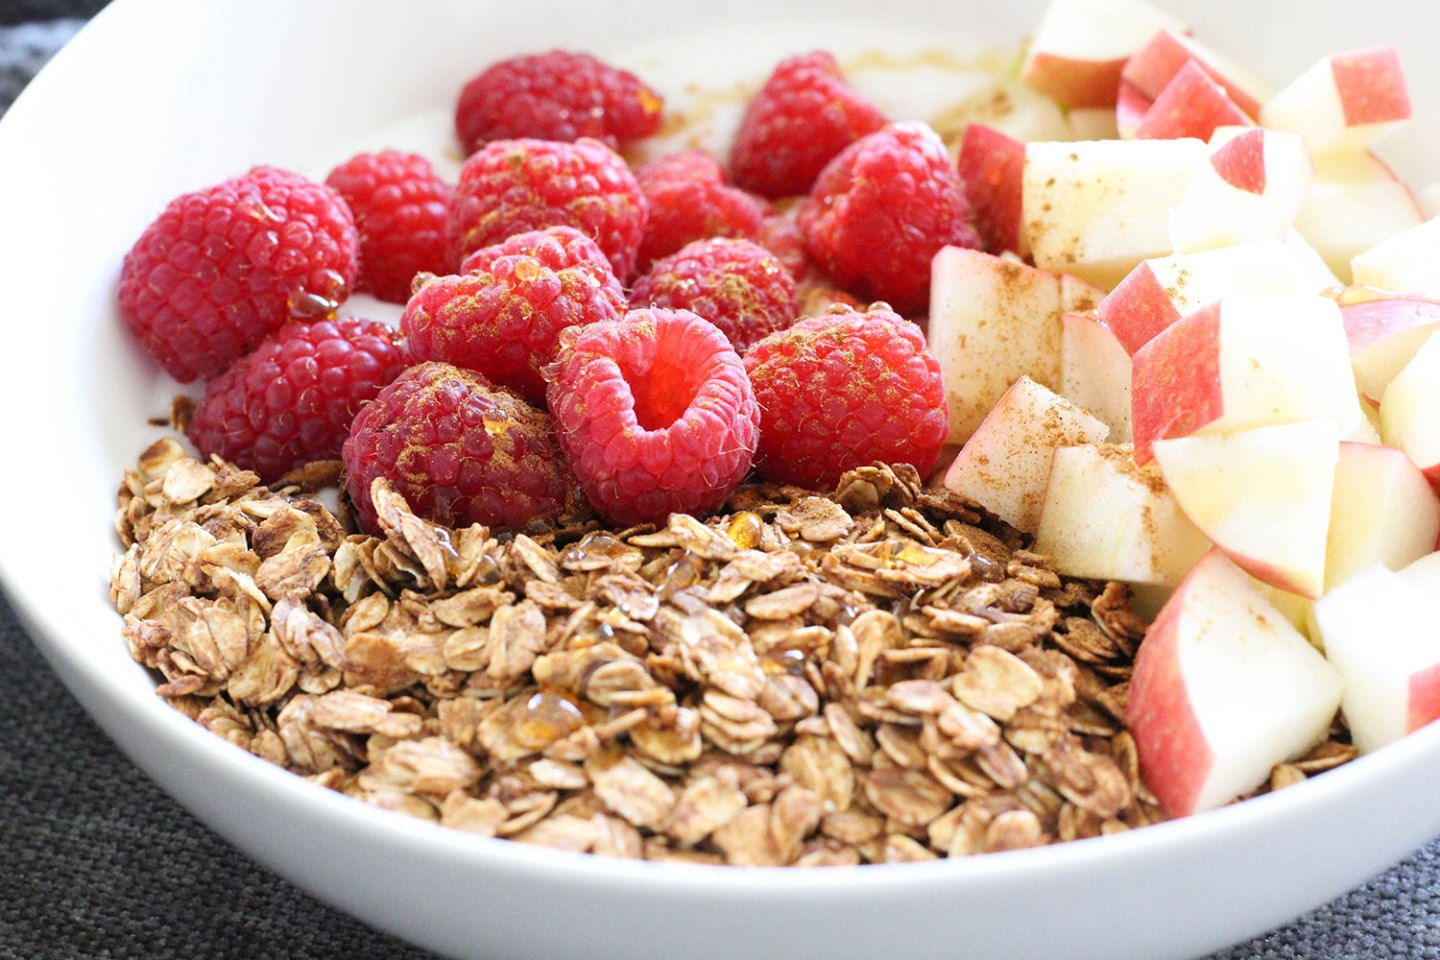 TOASTED OATS GRANOLA CEREAL (gluten-free, dairy-free, sugar-free)